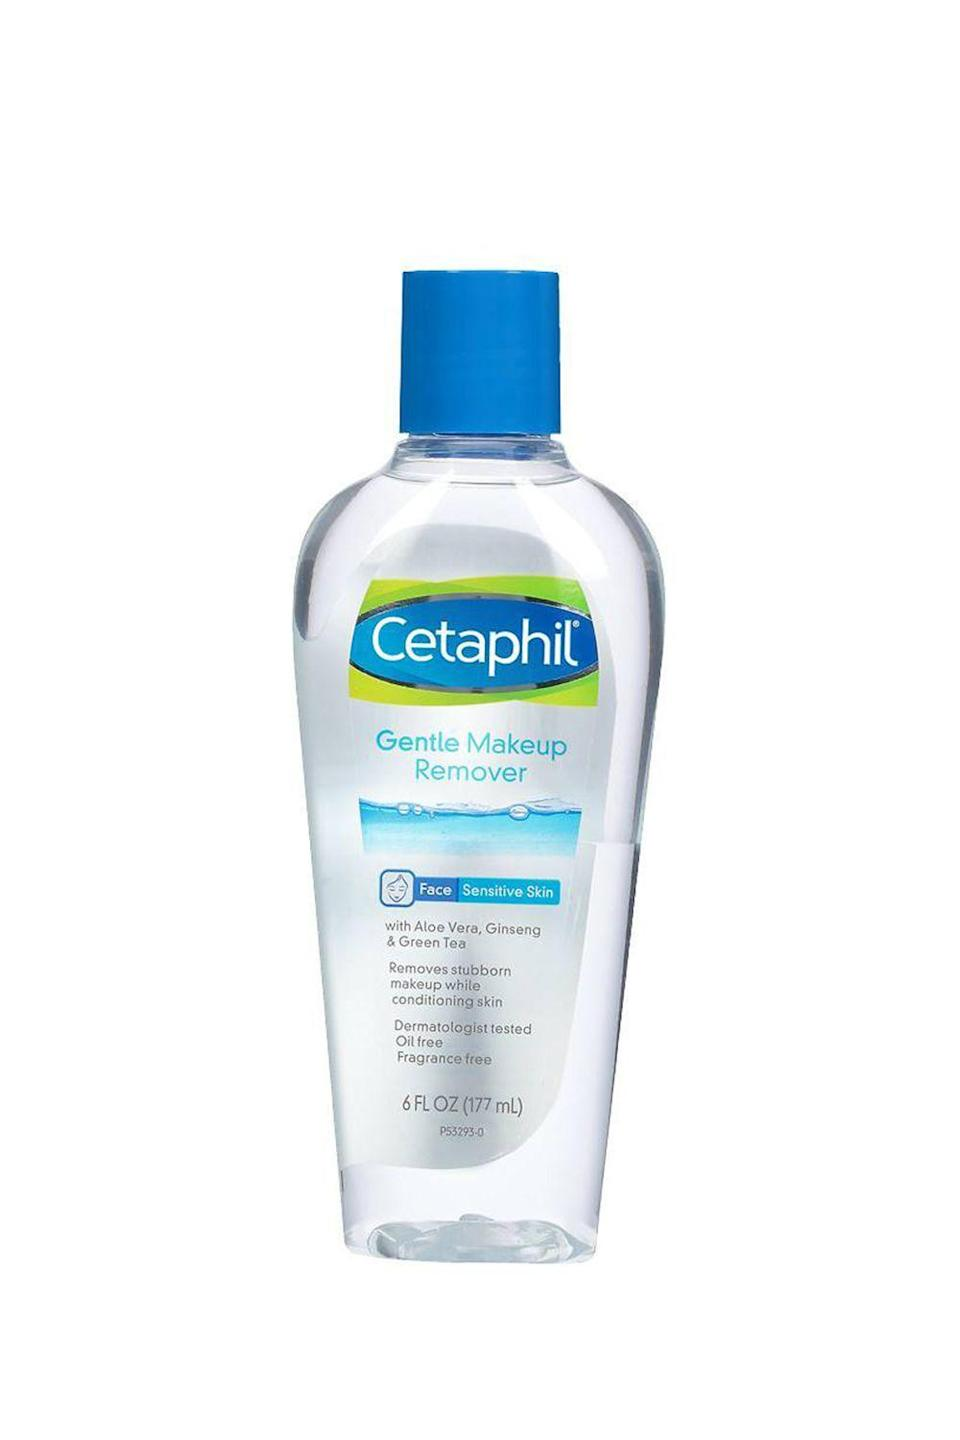 """<p><strong>Cetaphil</strong></p><p>ulta.com</p><p><strong>$10.99</strong></p><p><a href=""""https://go.redirectingat.com?id=74968X1596630&url=https%3A%2F%2Fwww.ulta.com%2Fliquid-makeup-remover%3FproductId%3DxlsImpprod15622967&sref=https%3A%2F%2Fwww.cosmopolitan.com%2Fstyle-beauty%2Fbeauty%2Fg19620718%2Fbest-makeup-remover%2F"""" rel=""""nofollow noopener"""" target=""""_blank"""" data-ylk=""""slk:Shop Now"""" class=""""link rapid-noclick-resp"""">Shop Now</a></p><p>Noncomedogenic? Check. Fragrance-free? Check. Gently removes face makeup with zero oily residue? Check. This makeup remover was legit made for your sensitive skin. Bonus: It's <strong>formulated with hydrating</strong> <strong><a href=""""https://www.cosmopolitan.com/style-beauty/beauty/g27017387/best-aloe-vera-gel/"""" rel=""""nofollow noopener"""" target=""""_blank"""" data-ylk=""""slk:aloe vera"""" class=""""link rapid-noclick-resp"""">aloe vera</a></strong> and soothing ginseng and green tea.</p>"""